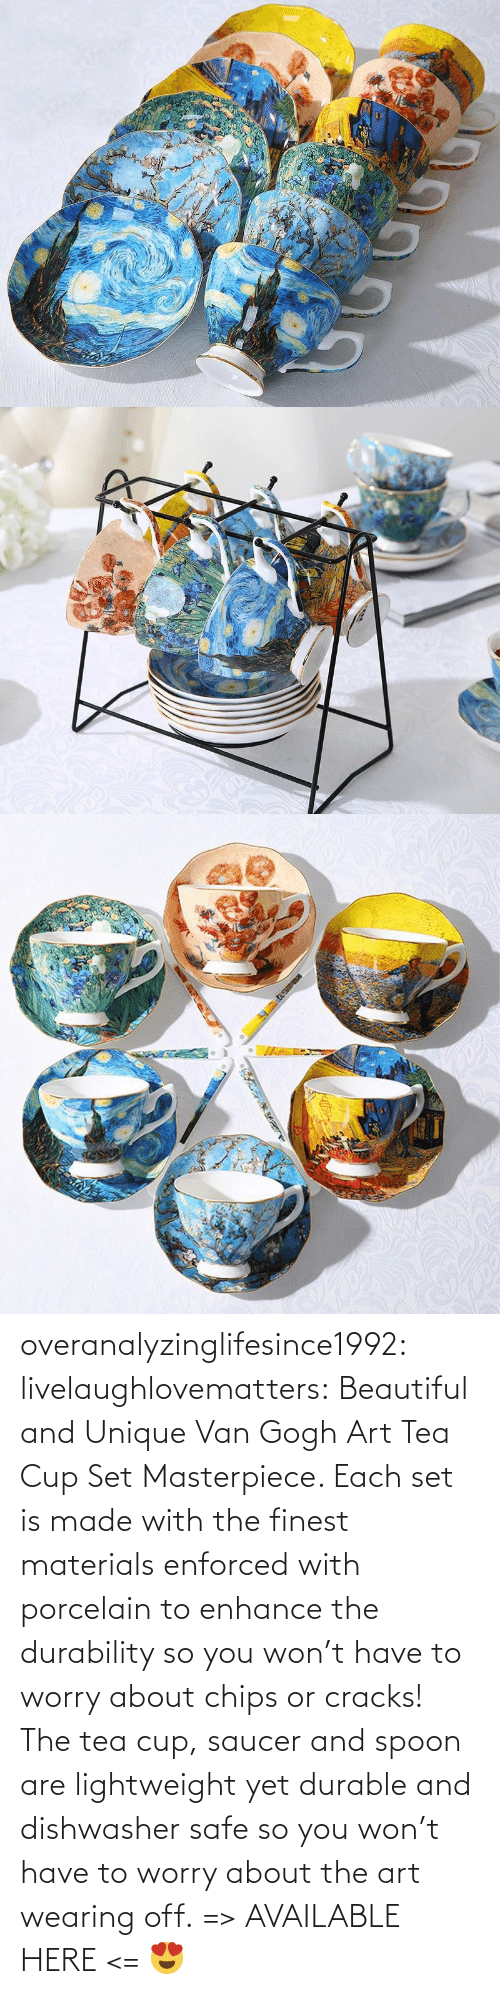 Beautiful, Tumblr, and Blog: overanalyzinglifesince1992: livelaughlovematters:  Beautiful and Unique Van Gogh Art Tea Cup Set Masterpiece. Each set is made with the finest materials enforced with porcelain to enhance the durability so you won't have to worry about chips or cracks! The tea cup, saucer and spoon are lightweight yet durable and dishwasher safe so you won't have to worry about the art wearing off. => AVAILABLE HERE <=    😍